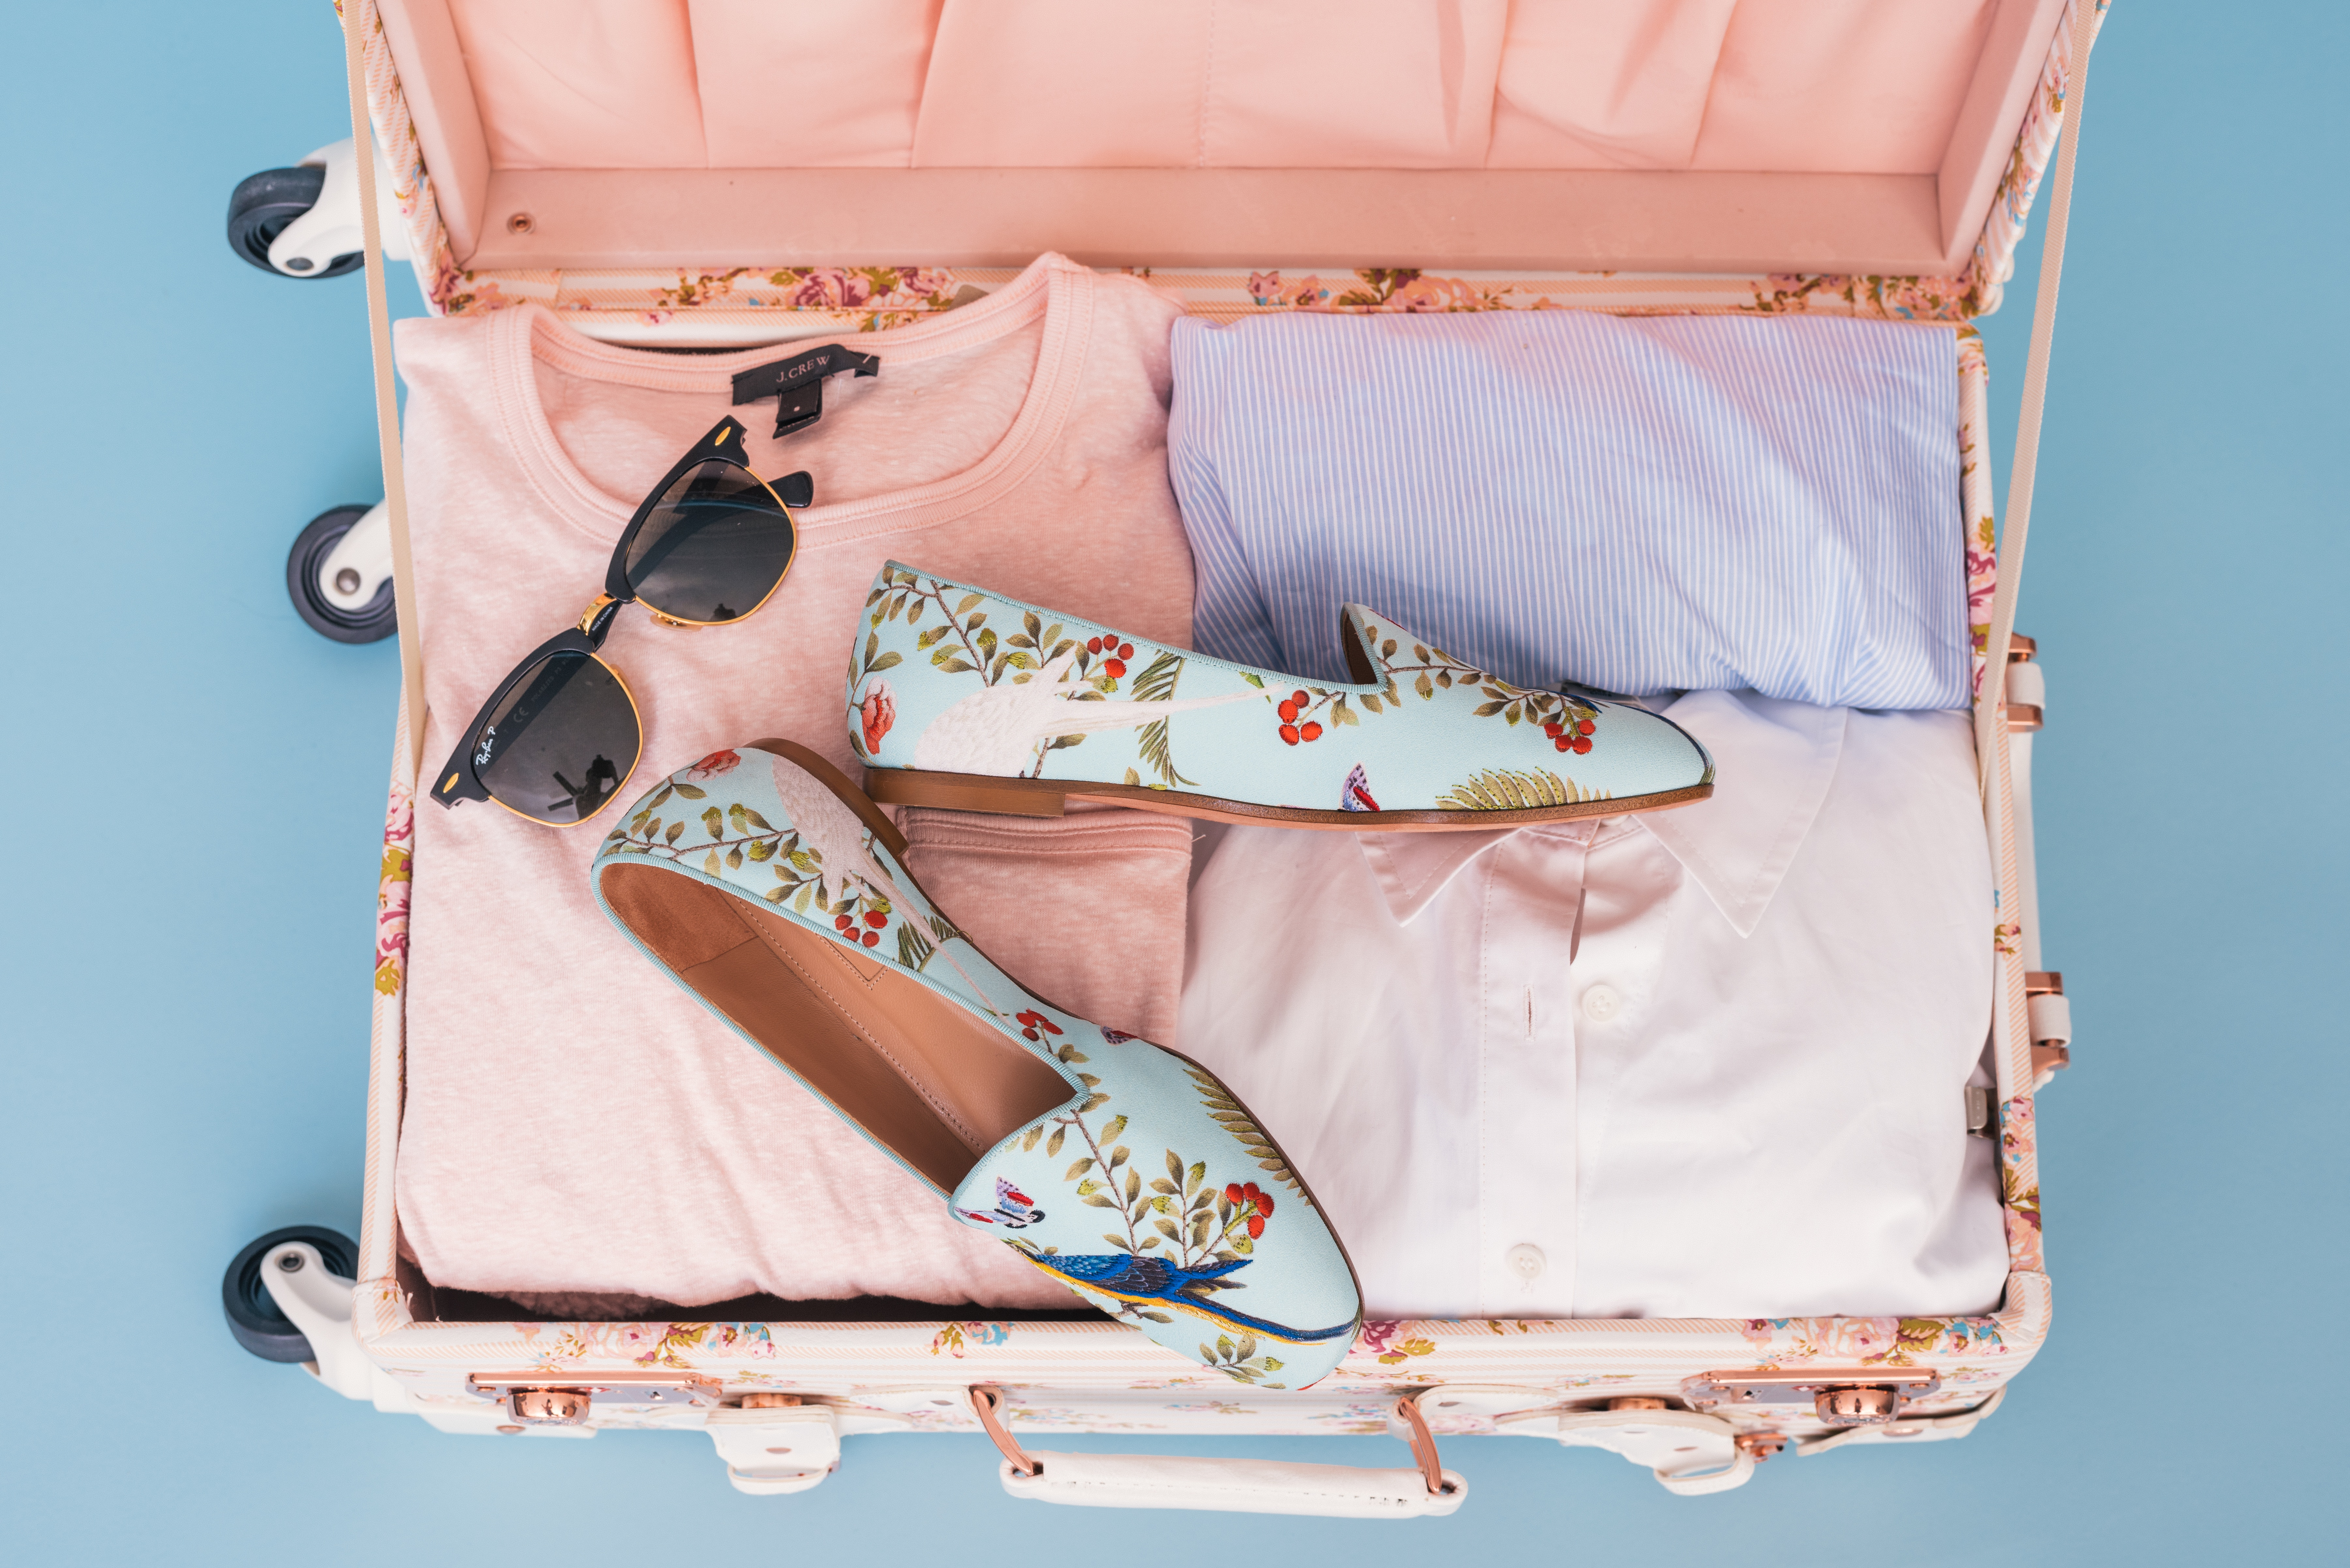 The Ultimate Guide for Kids to Pack Your Own Suitcase